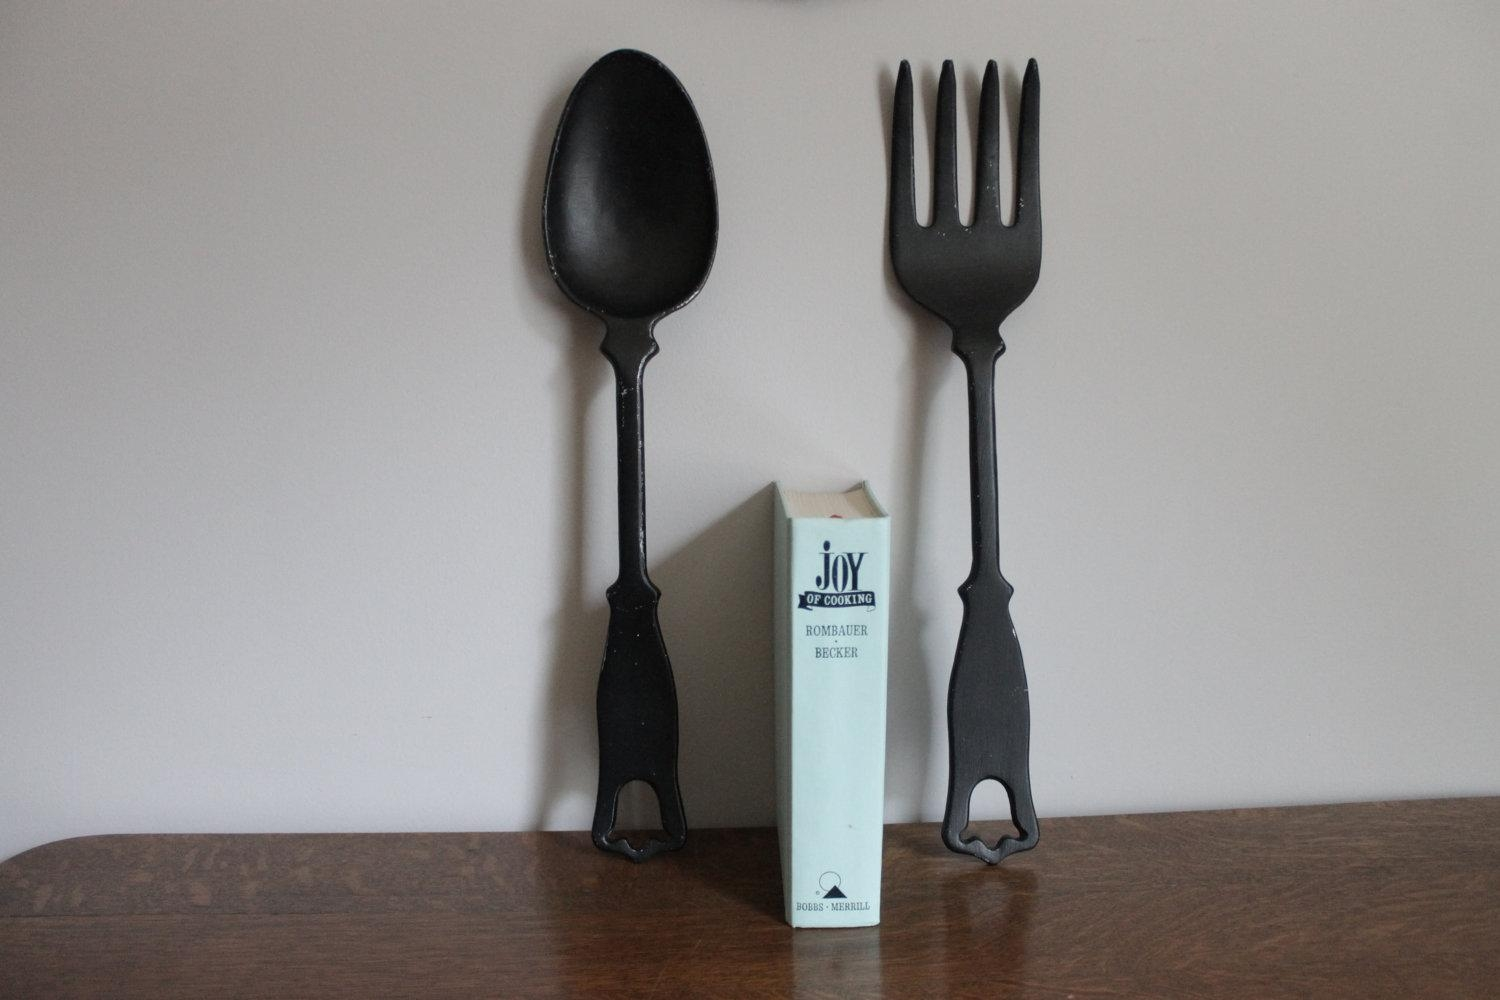 Big Fork And Spoon Wall Art Galleries In Fork And Spoon Wall Decor With Big Spoon And Fork Wall Decor (View 14 of 20)